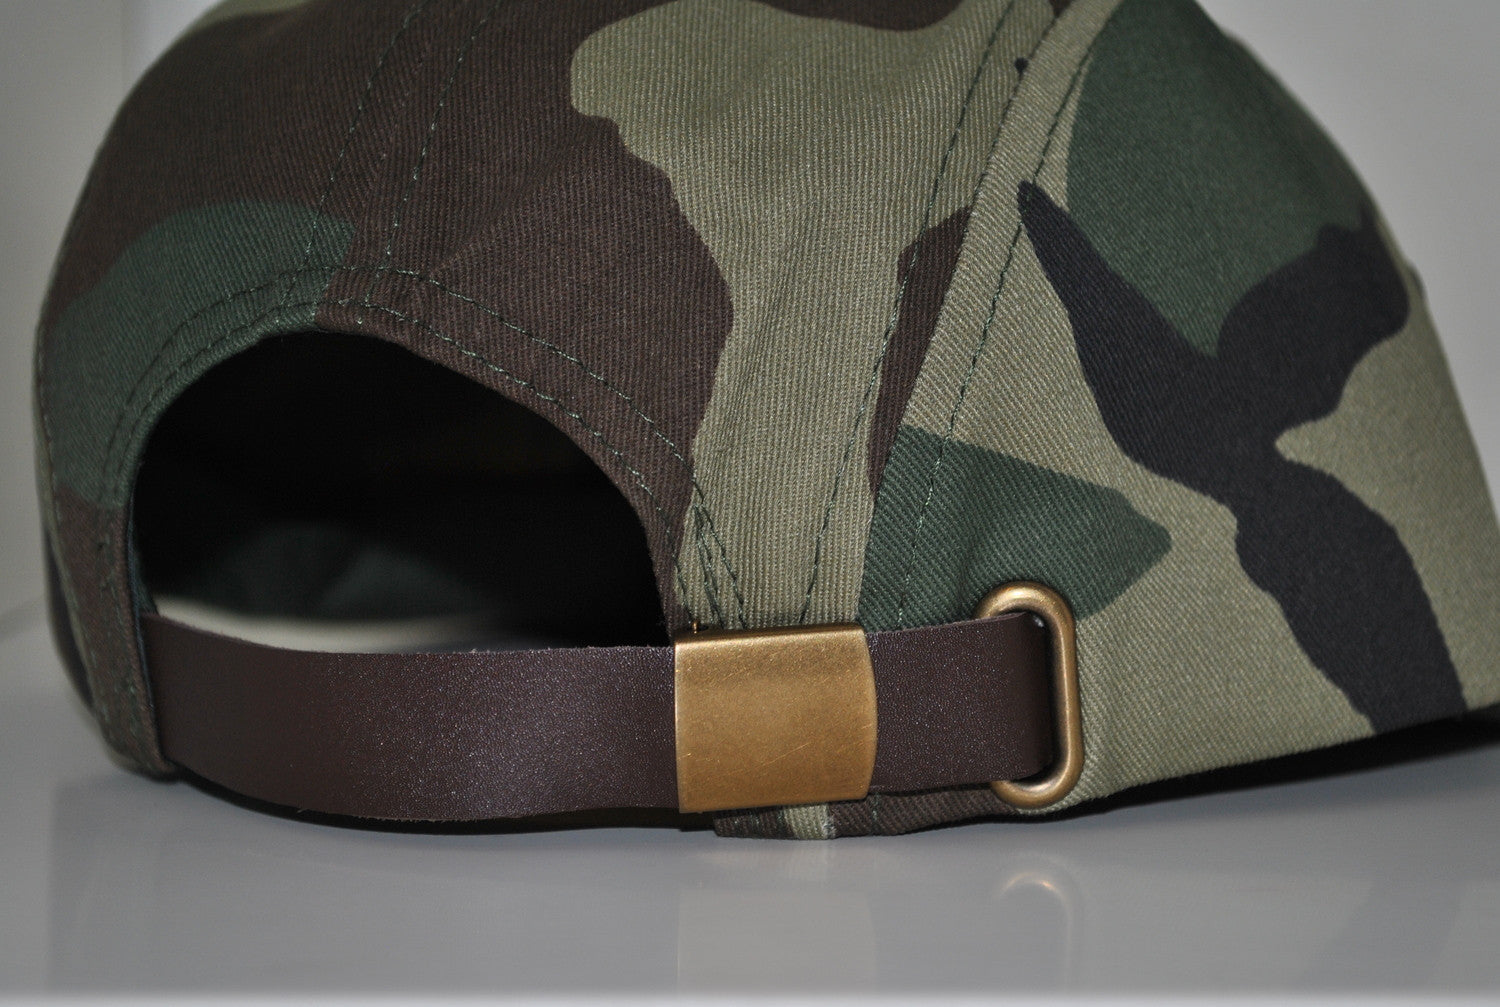 Guerilla Warfare 5-Panel Hat - Brutallic - 4